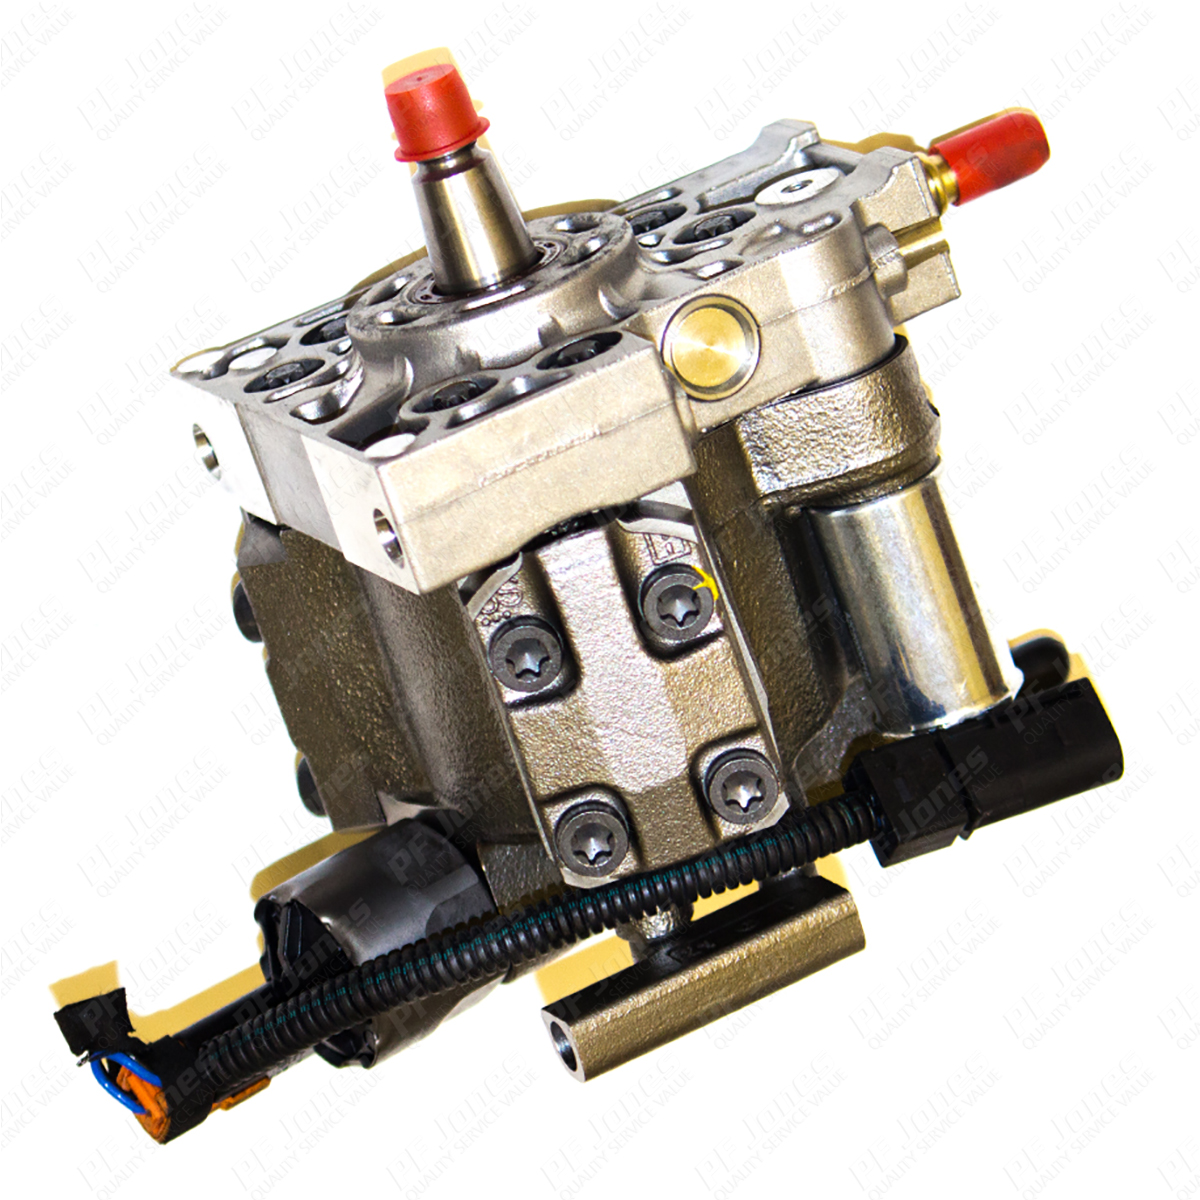 Jaguar S-Type 2.7 D 1999-2008 Reconditioned VDO/Siemens Diesel Fuel Pump 5WS40157